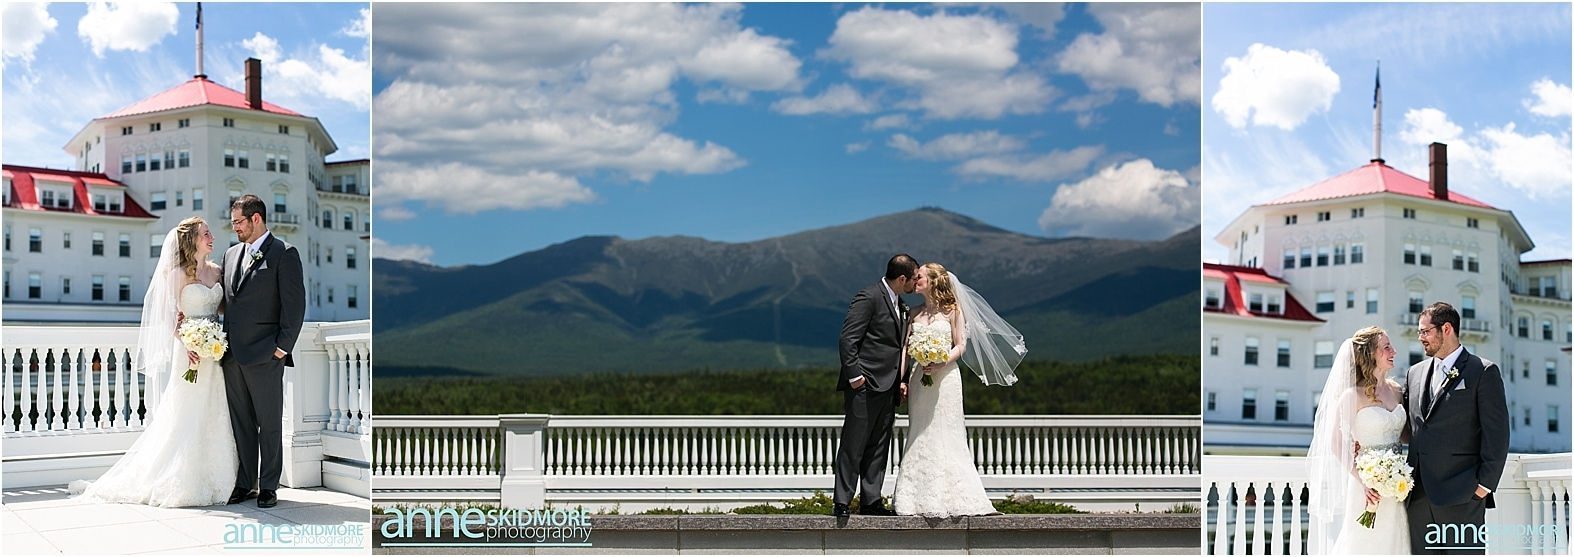 Mount_Washington_Hotel_Wedding_0021